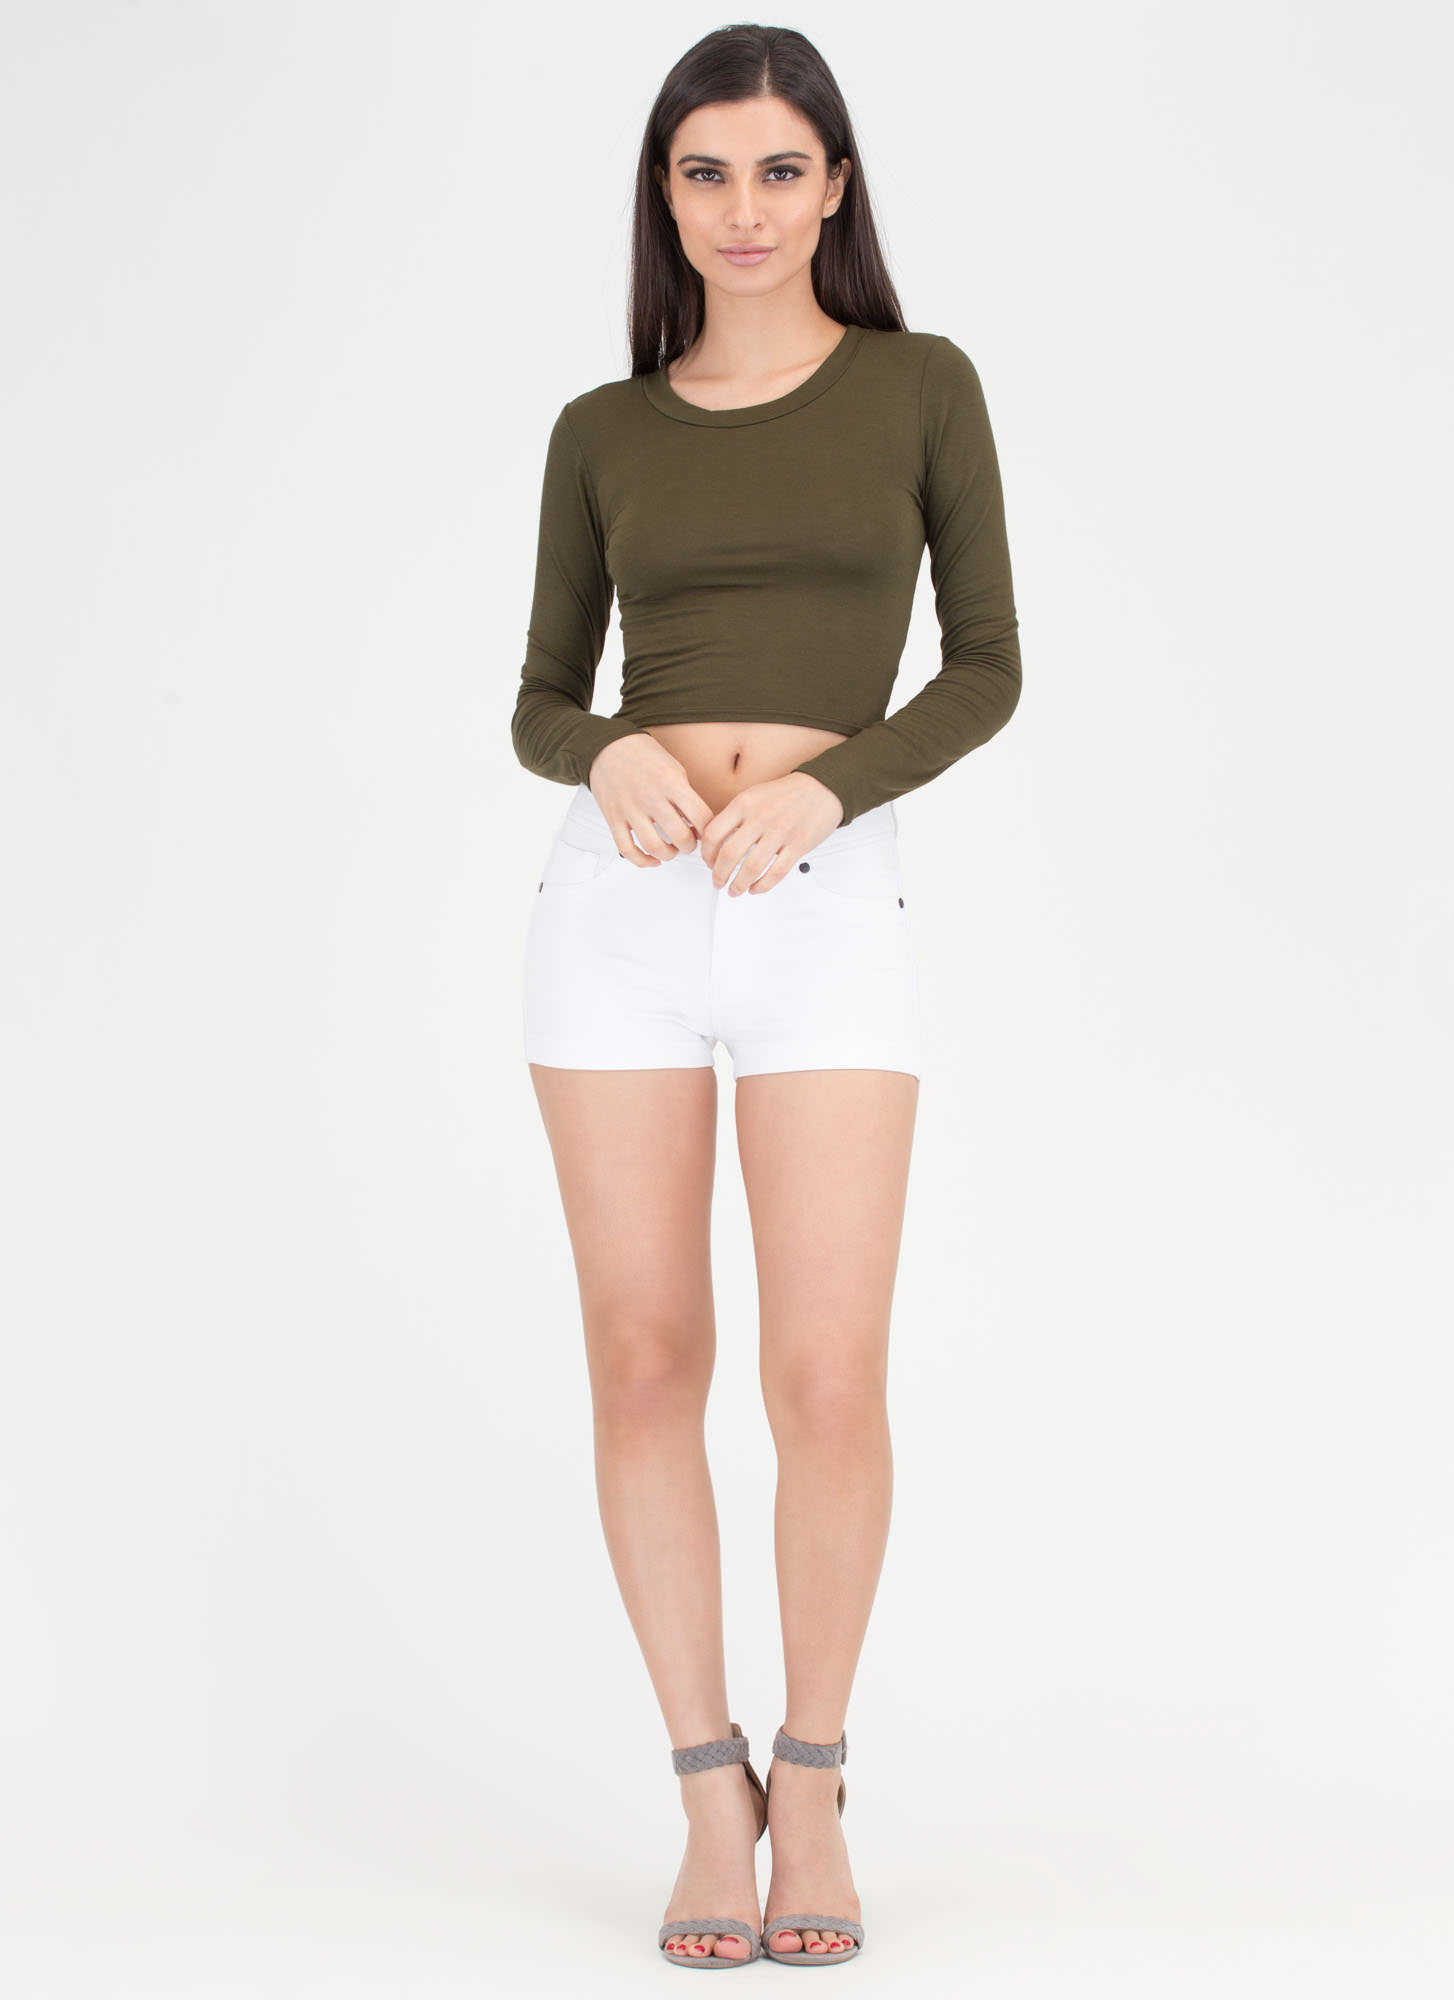 Not-So-Basic Long Sleeve Crop Top OLIVE